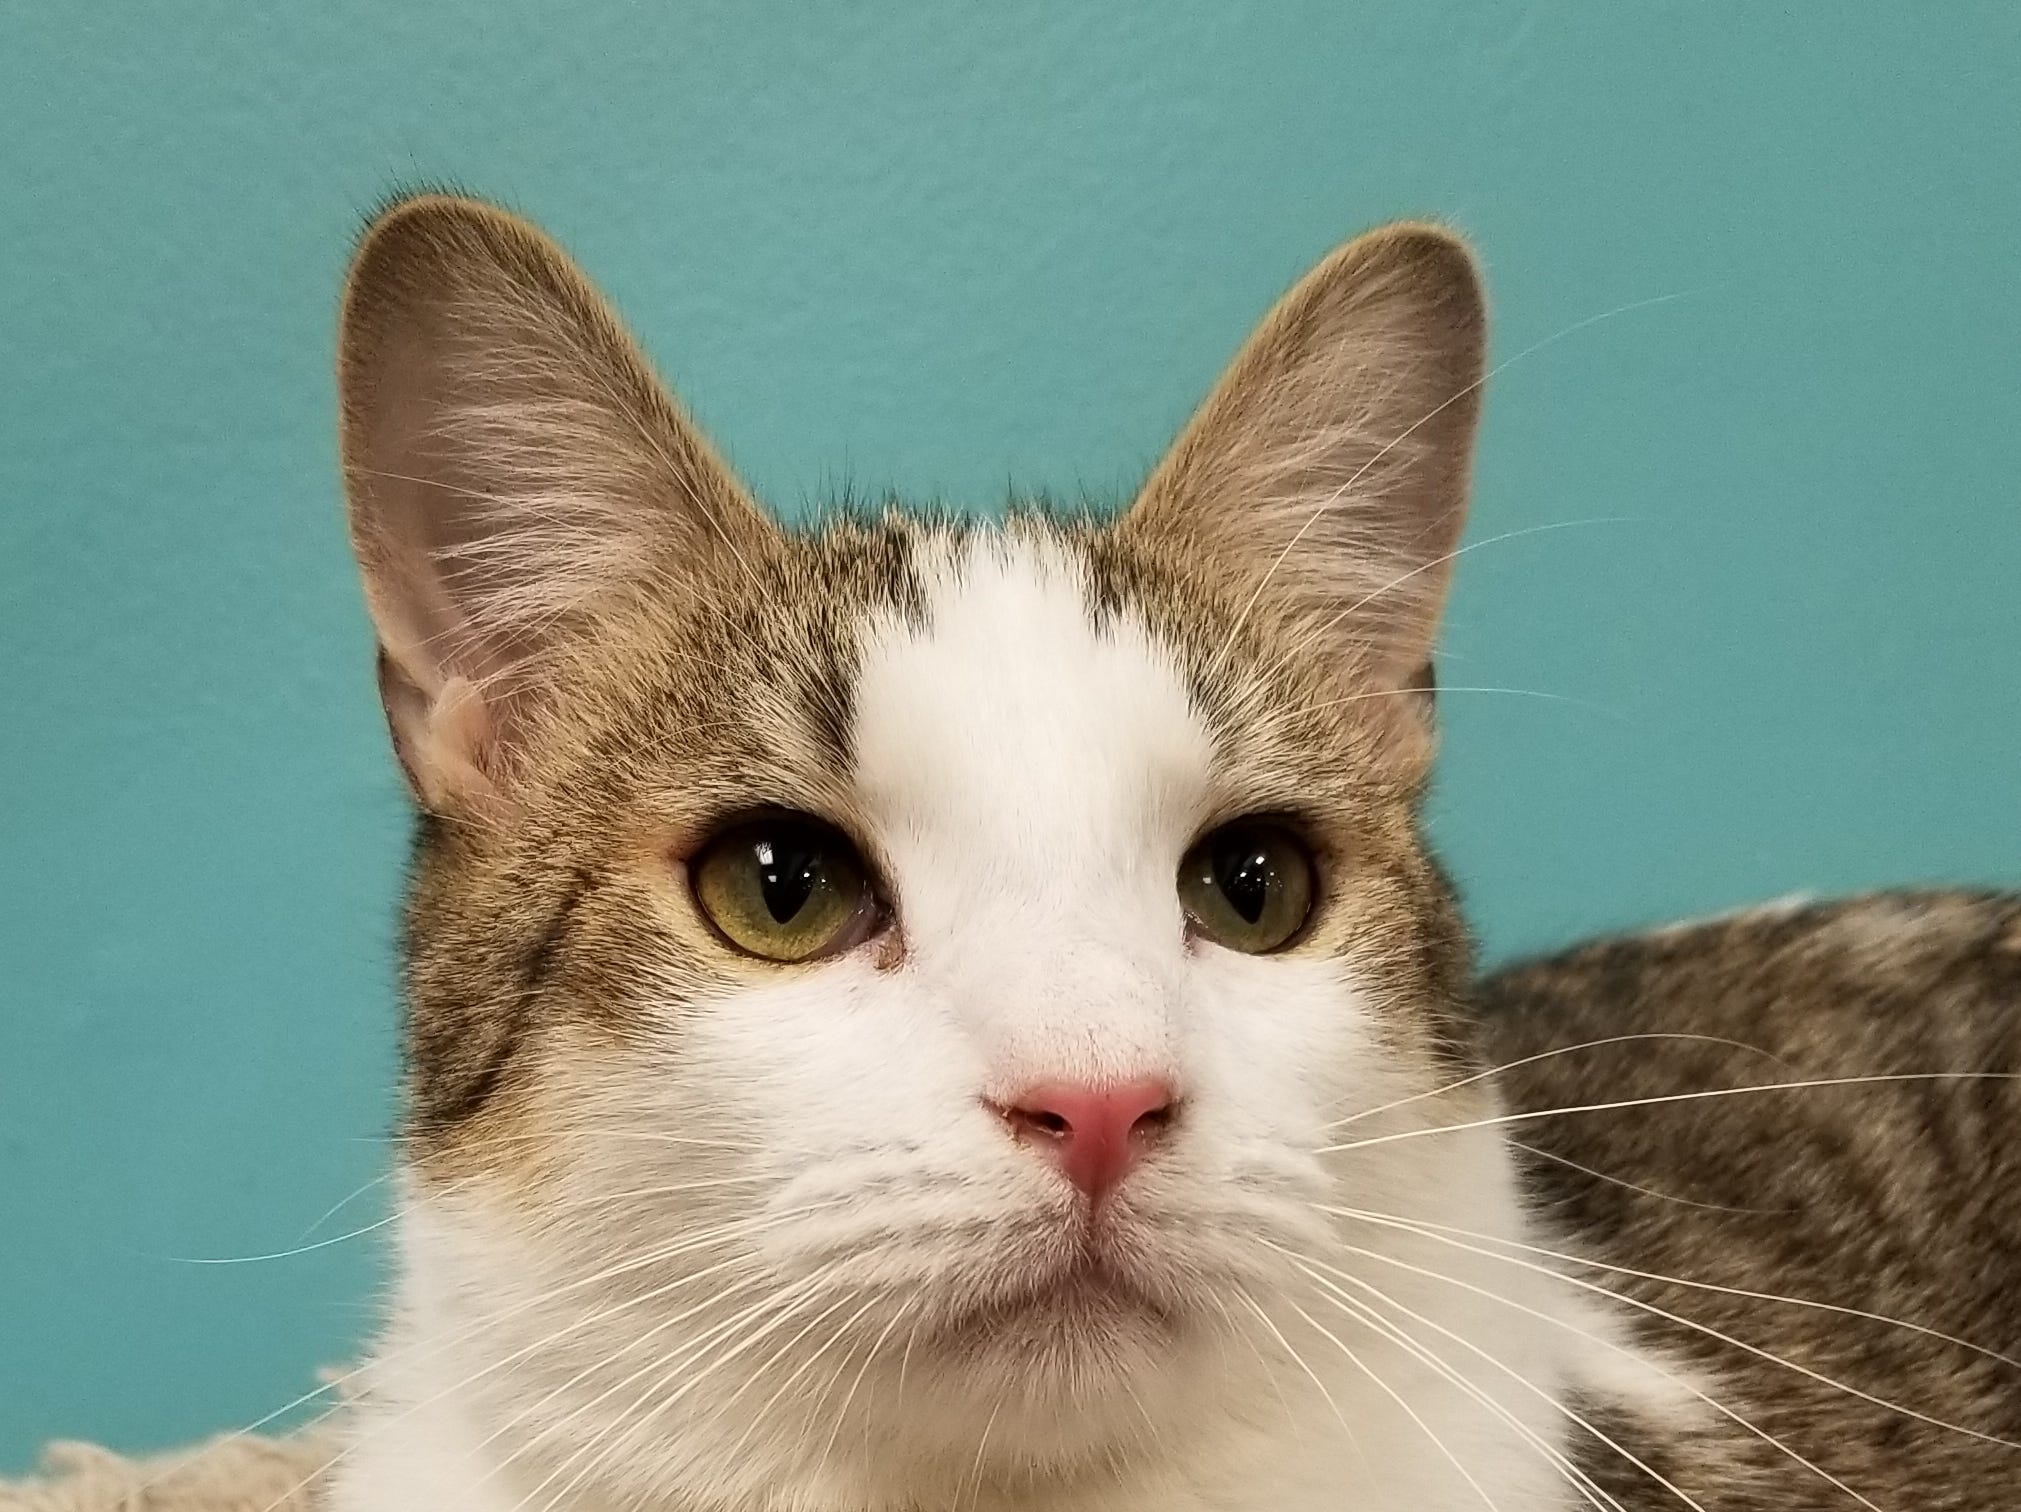 Bo Duke is a 10-month-old handsome guy who loves to cuddle and play! We still have lots of holiday kittens looking for their forever homes! Come see them at our adoption fair at West Town PetSmart Saturdays 12-6 p.m. and Sundays 1-5 p.m. All kittens are spayed or neutered, vaccinated, tested for FIV and FeLV, and microchipped. www.feralfelinefriends.org.